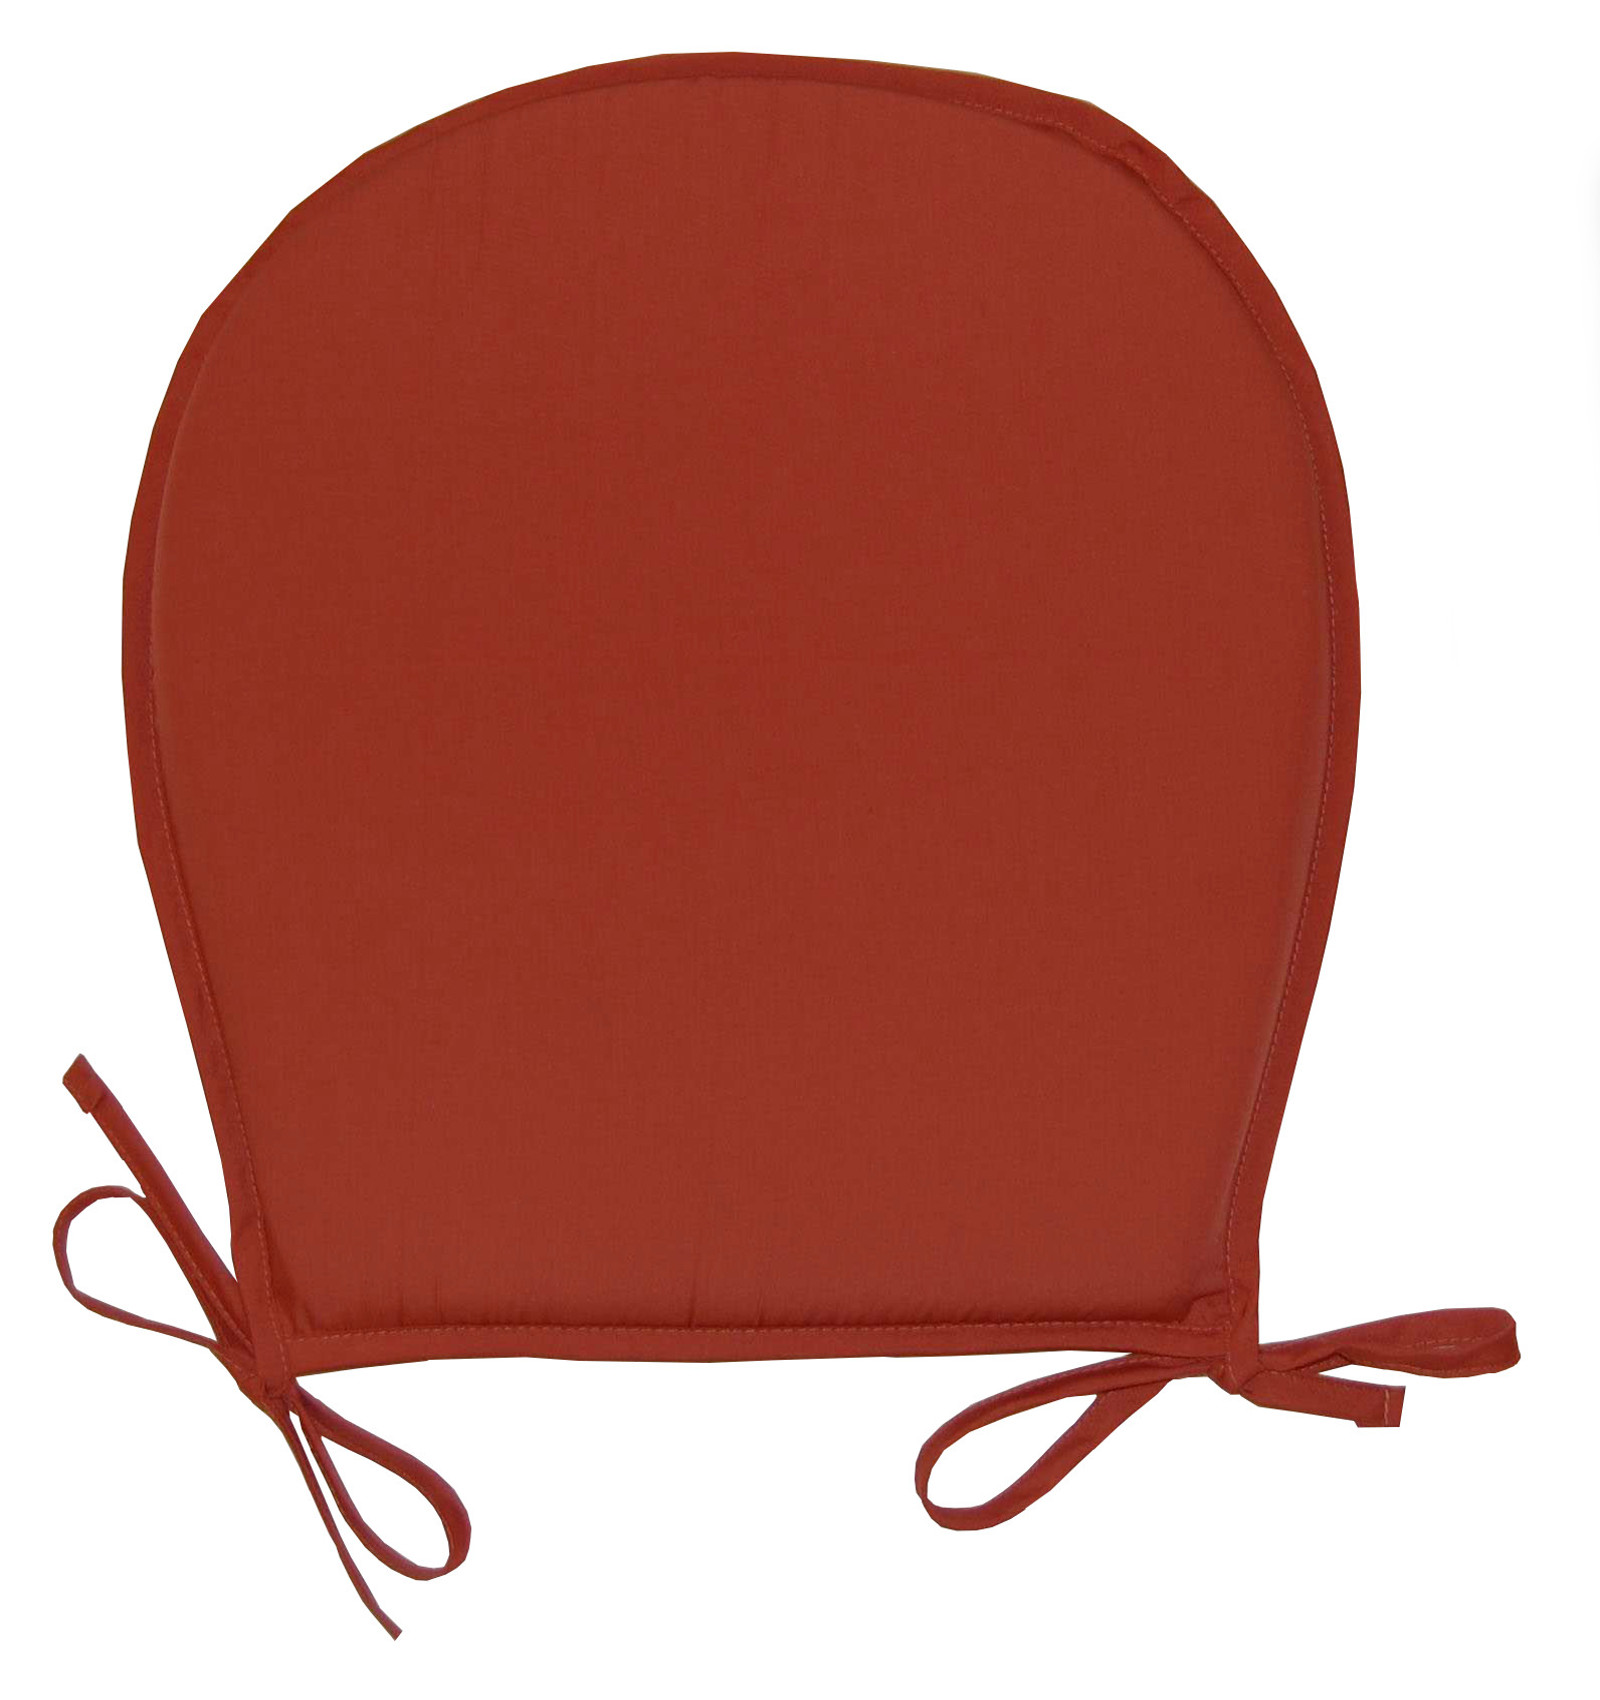 Kitchen Chairs Seat Pads For Kitchen Chairs